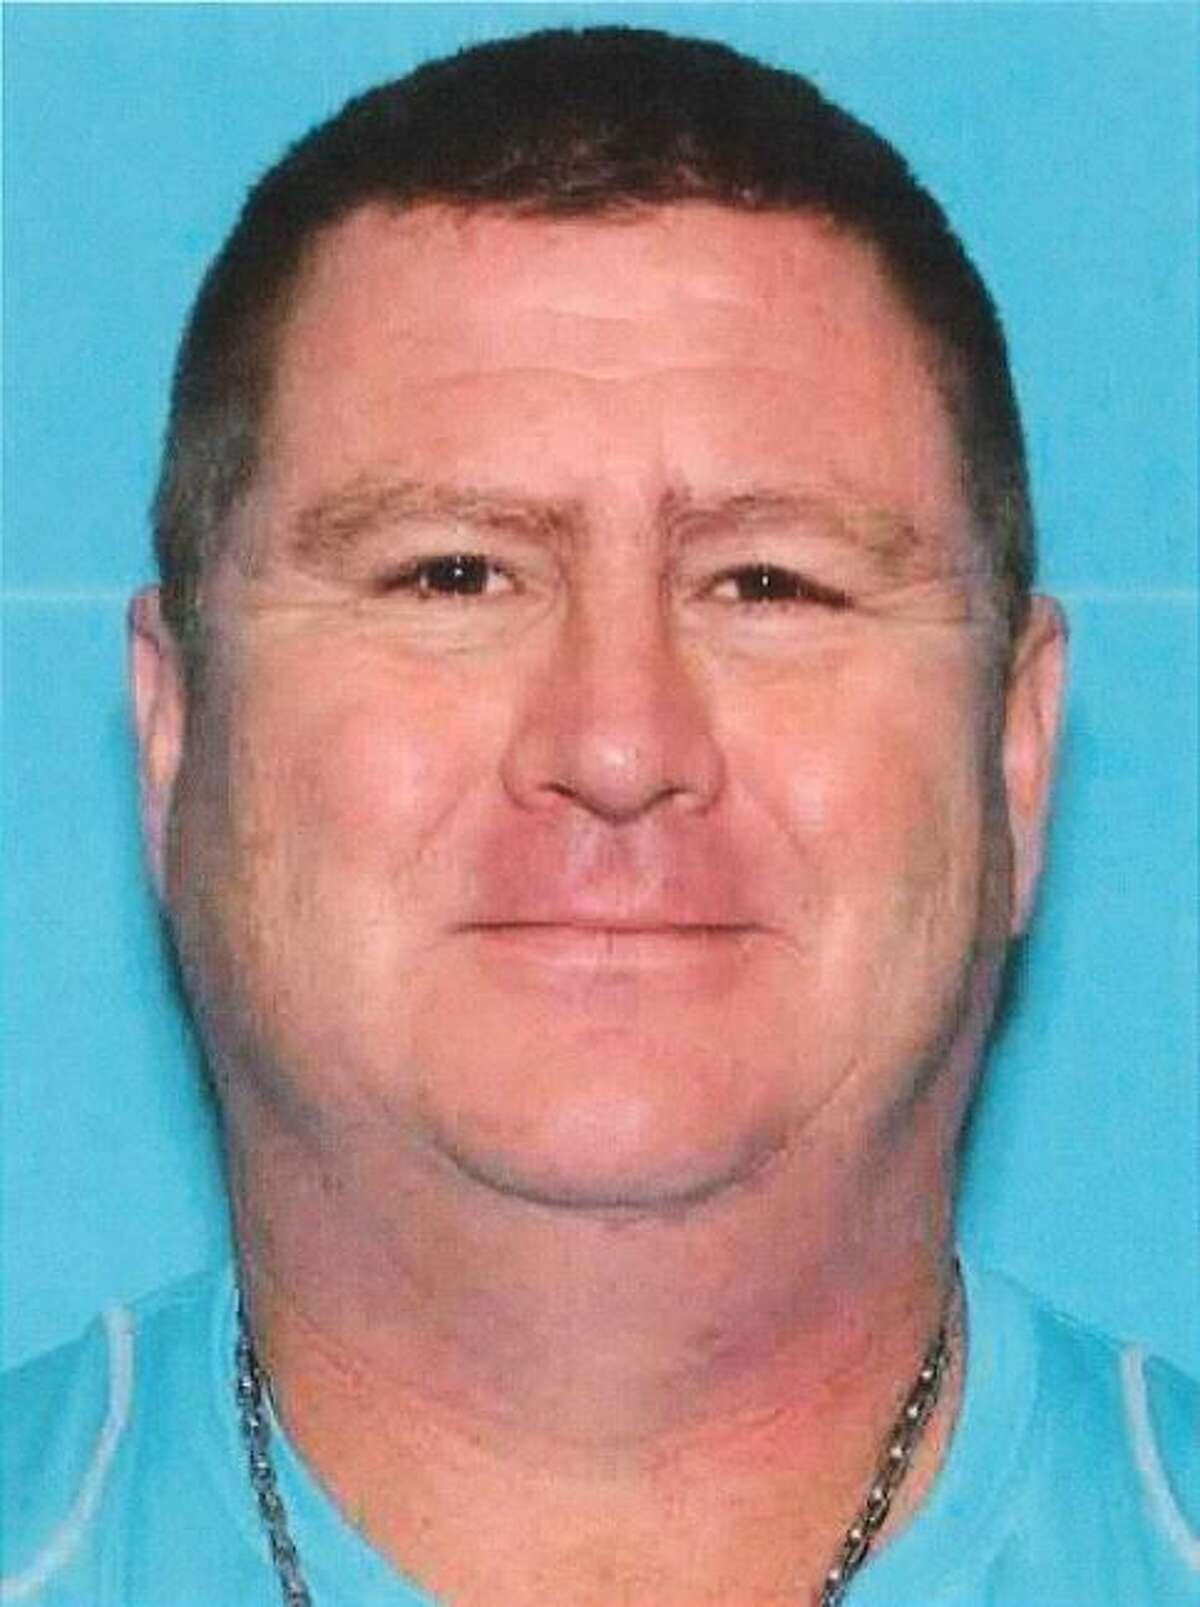 Stweart Thomas Mettz, 51, is accused of killing a San Marcos police officer on Dec. 4, 2017.